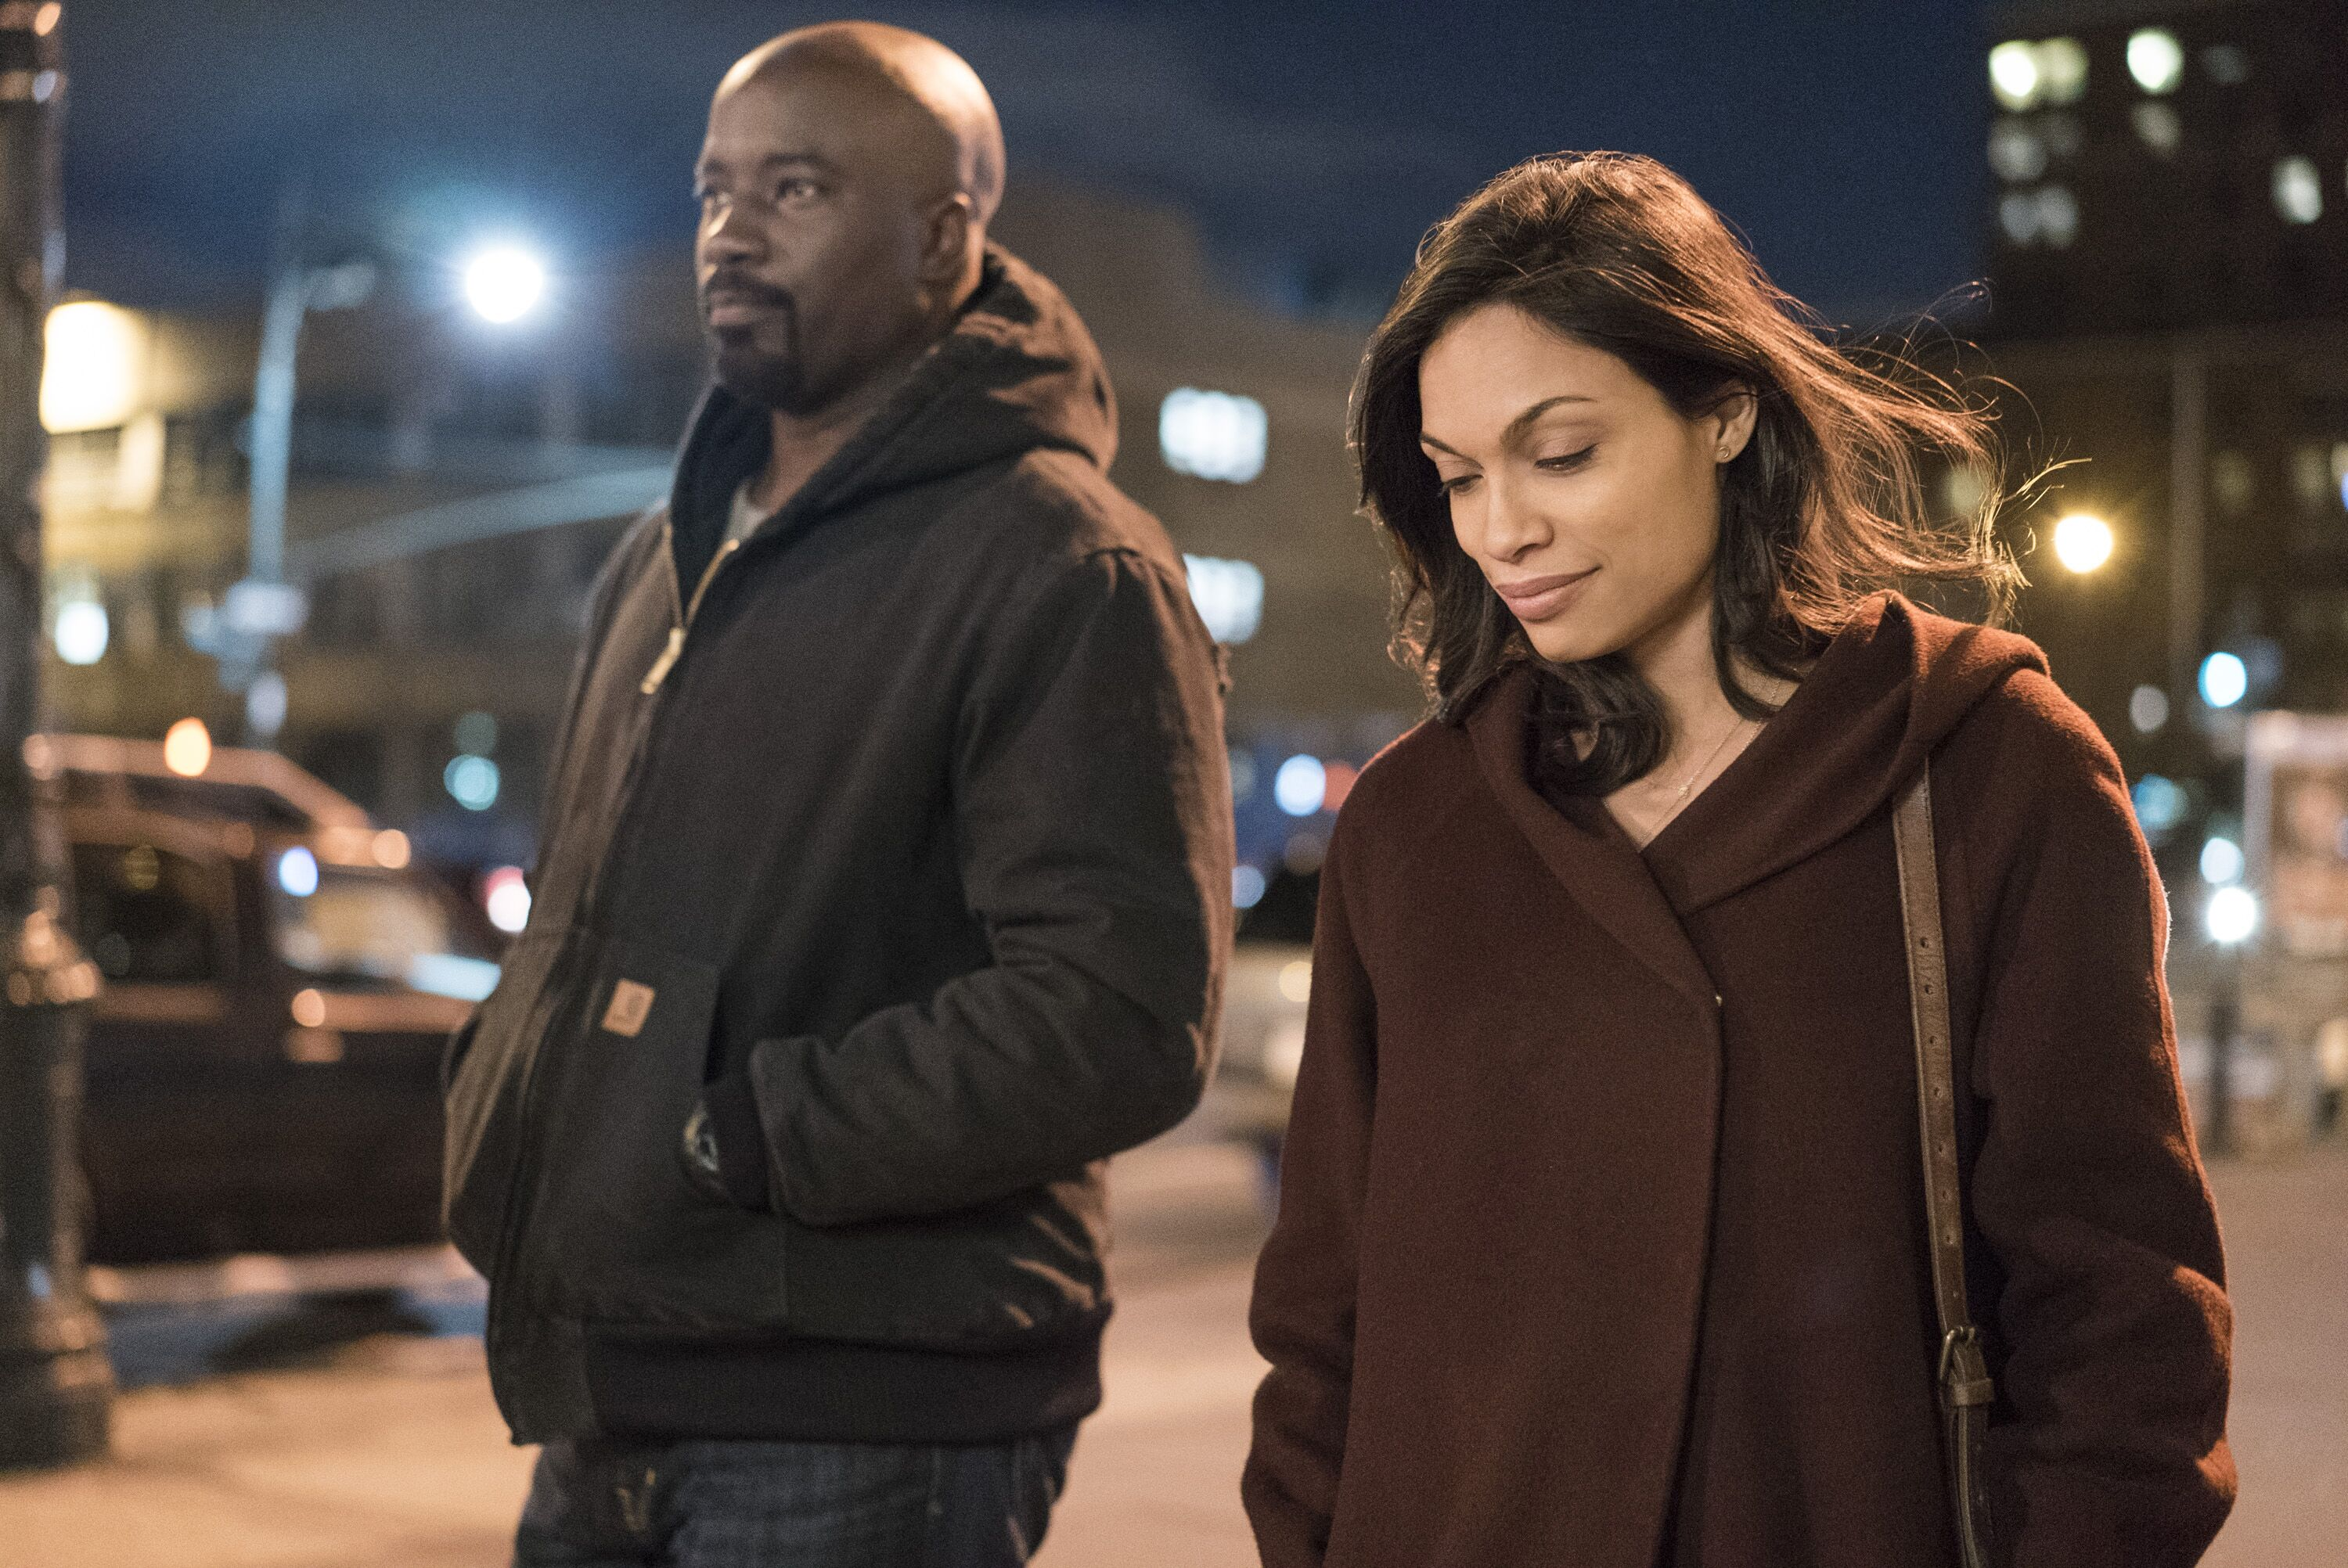 Luke Cage Season 2 Where Does The Series Go From Here